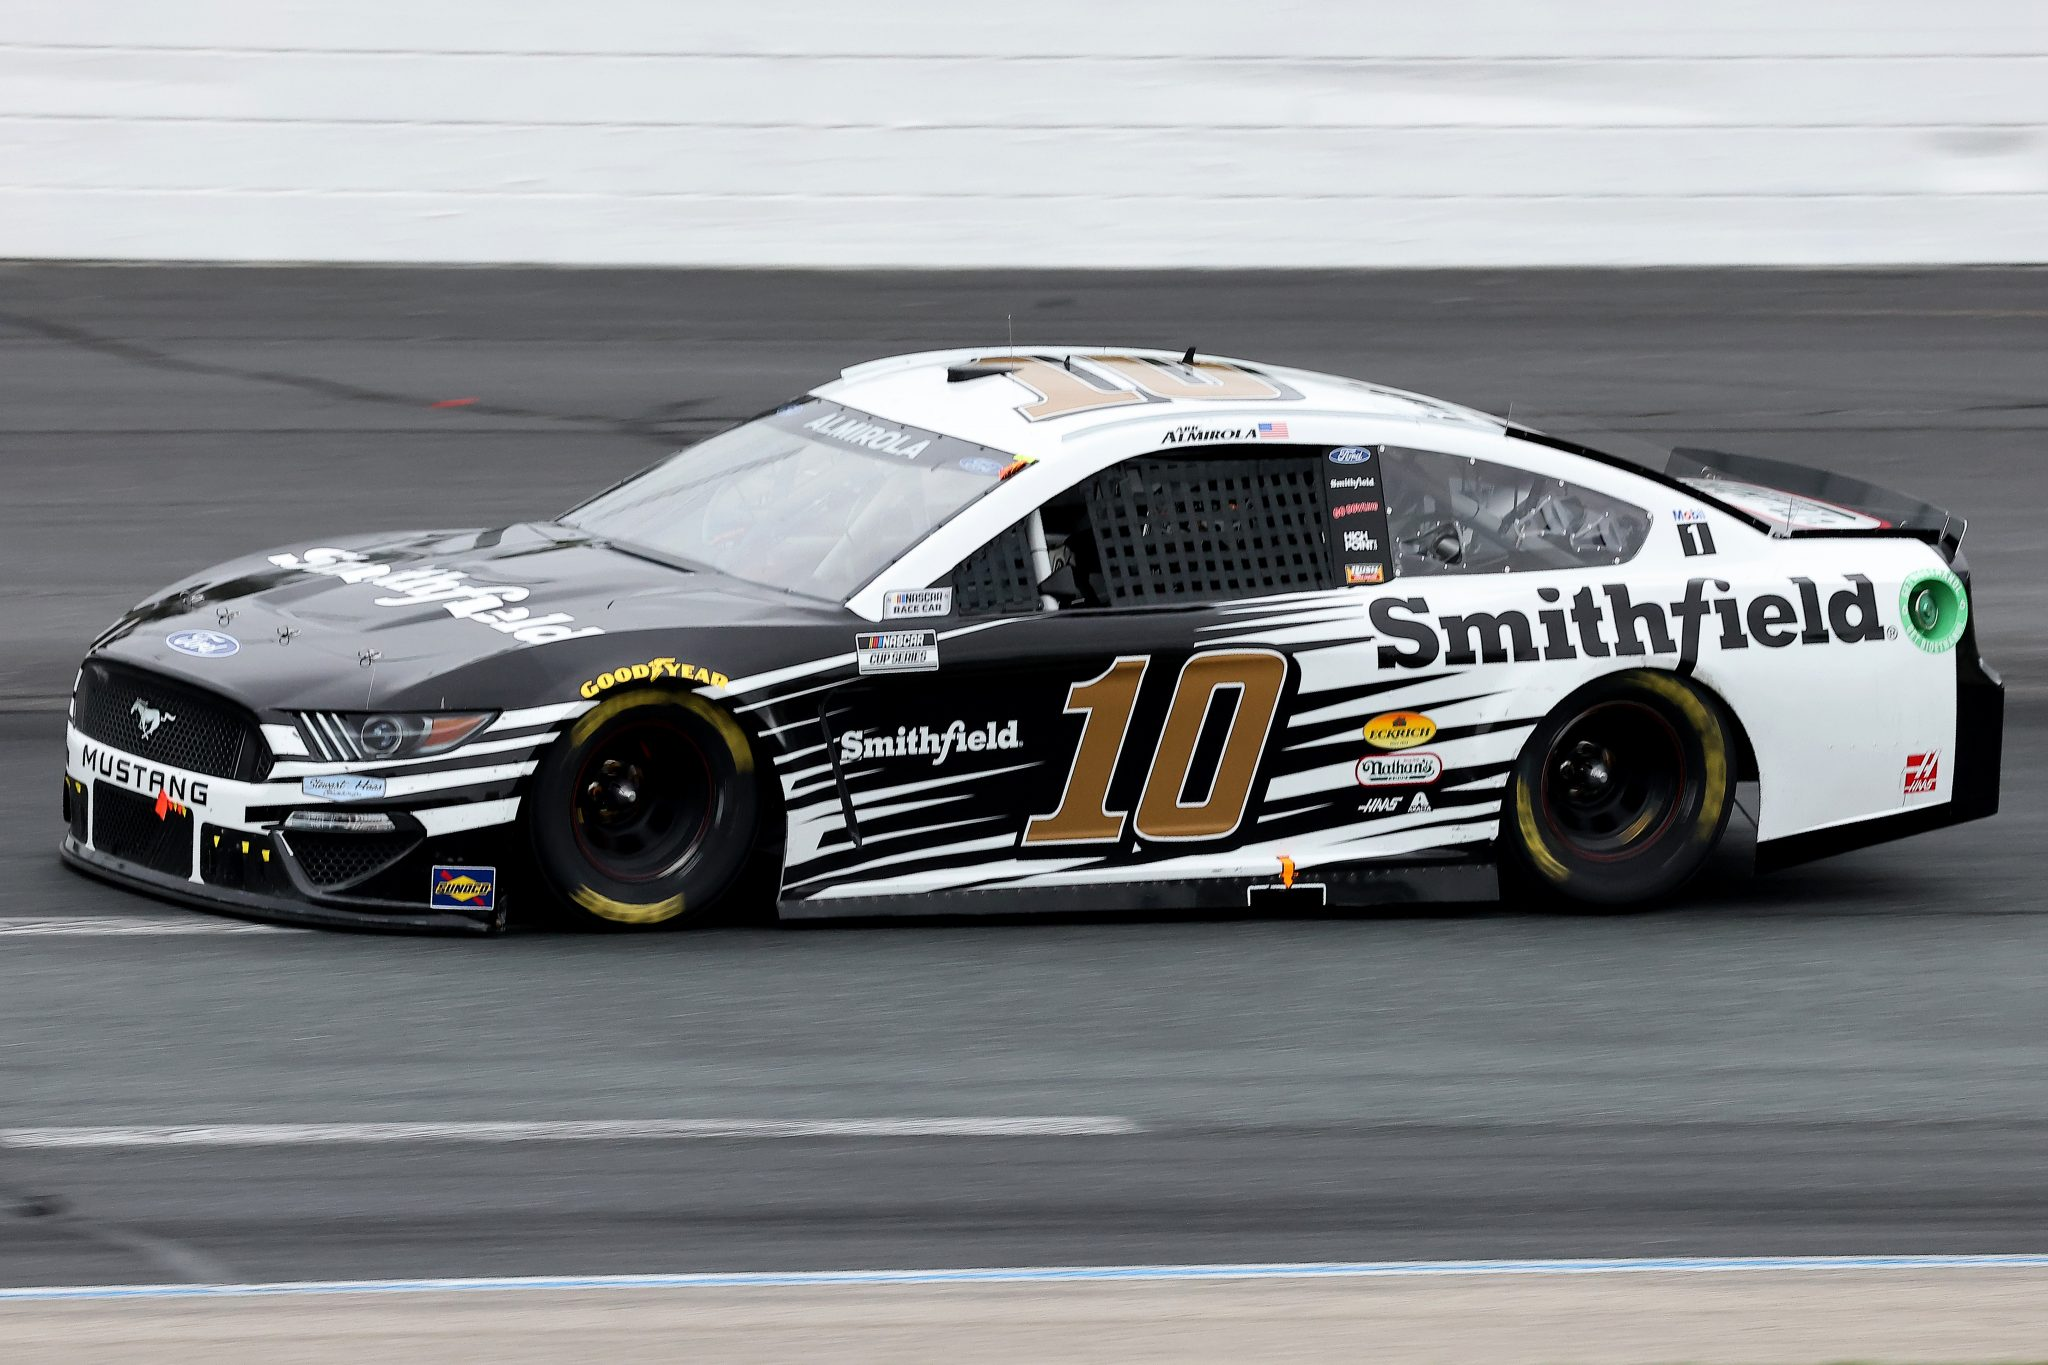 LOUDON, NEW HAMPSHIRE - JULY 18: Aric Almirola, driver of the #10 Smithfield Ford, drives during the NASCAR Cup Series Foxwoods Resort Casino 301 at New Hampshire Motor Speedway on July 18, 2021 in Loudon, New Hampshire. (Photo by James Gilbert/Getty Images)   Getty Images